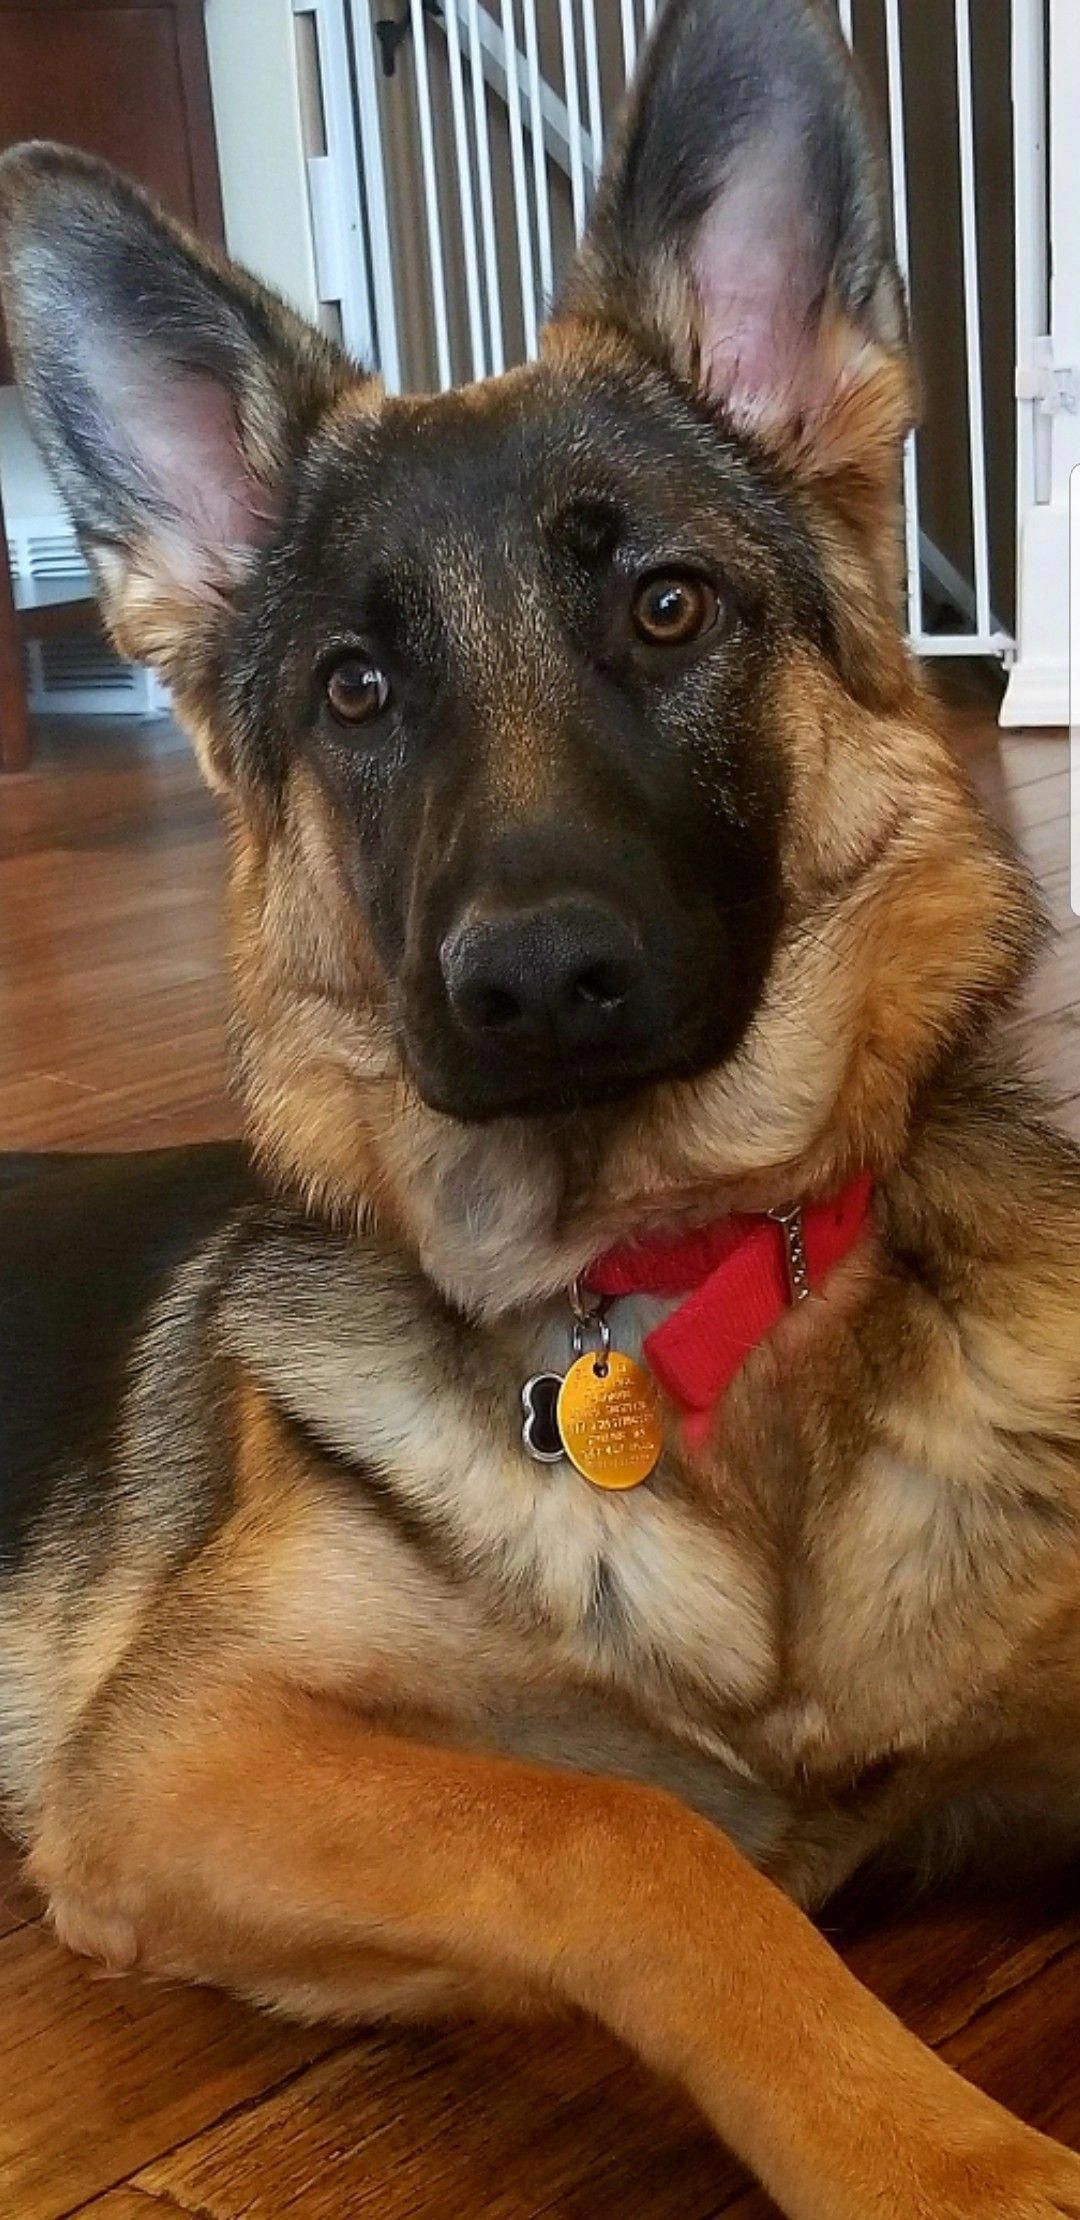 Find Out Additional Information On German Shepherd Puppies Look Into Our Web Site Shepherd Puppies Shepherd Dog German Shepherd Dogs